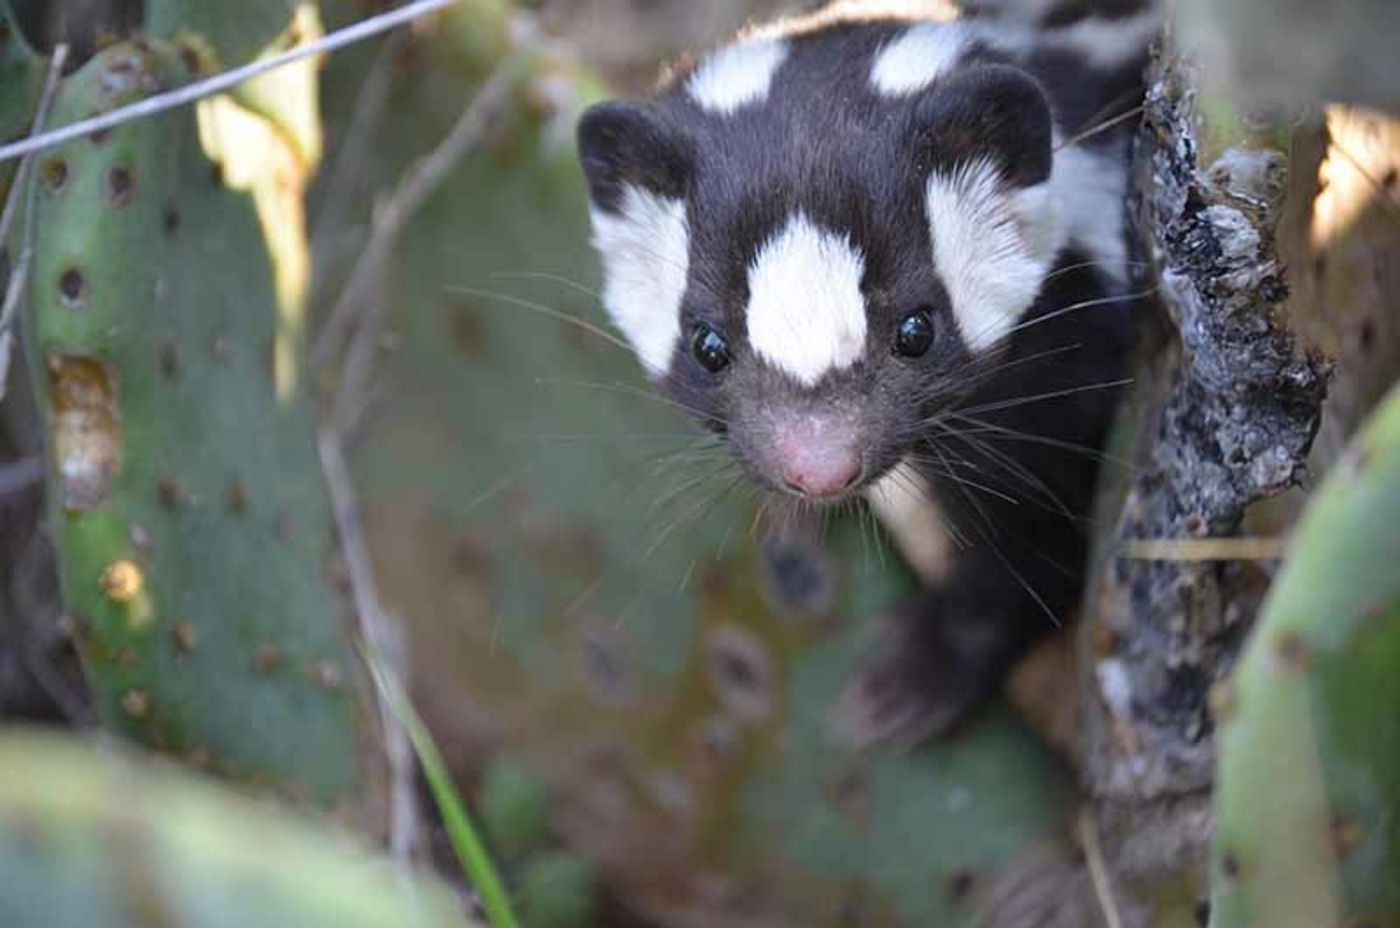 Close-up of a skunk's face, black with white spots, peeking out from behind a cactus